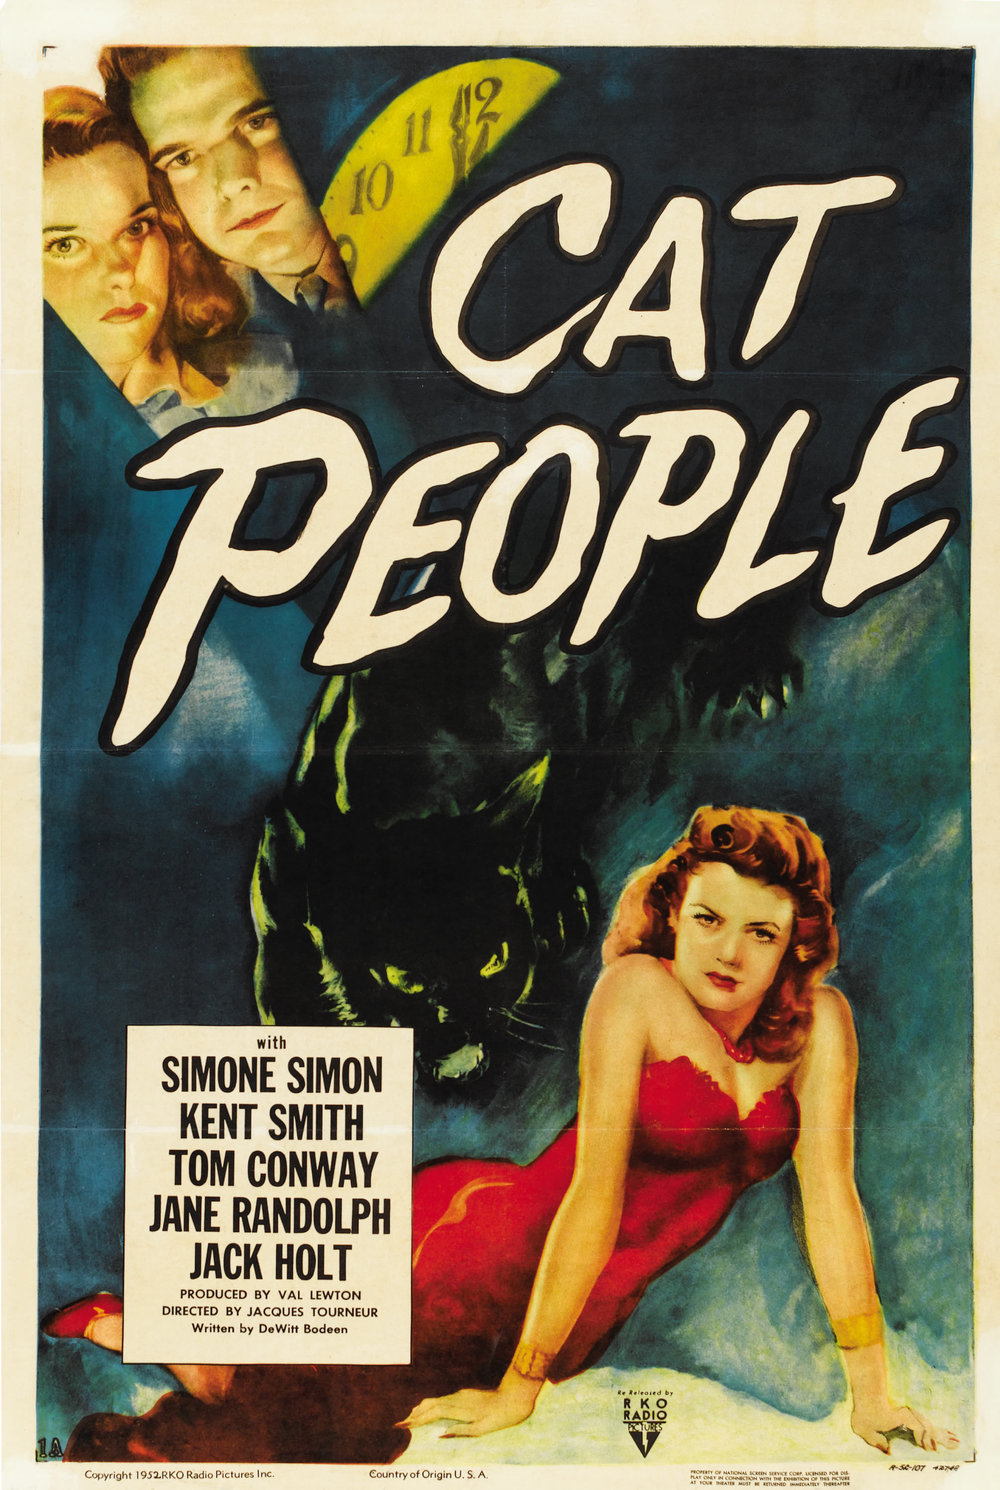 014-cat-people-theredlist.jpg